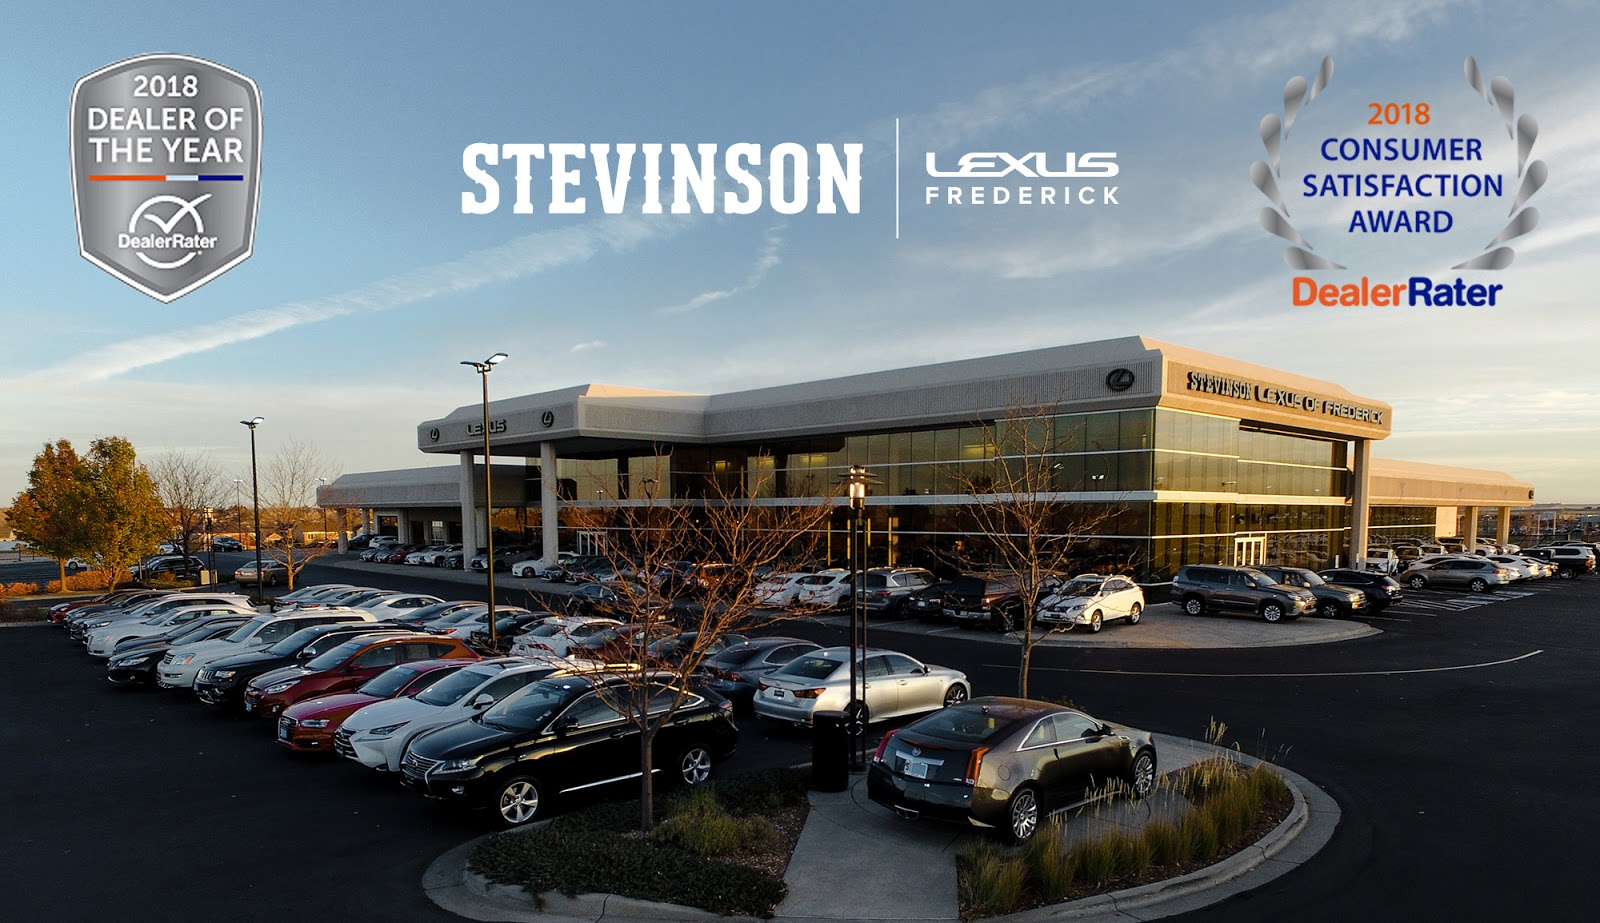 For More Information, To Schedule A Test Drive, Or To Contact Us Online  Visit Www.stevinsonlexusoffrederick.com, Give Us A Call At (303) 772 5999,  ...